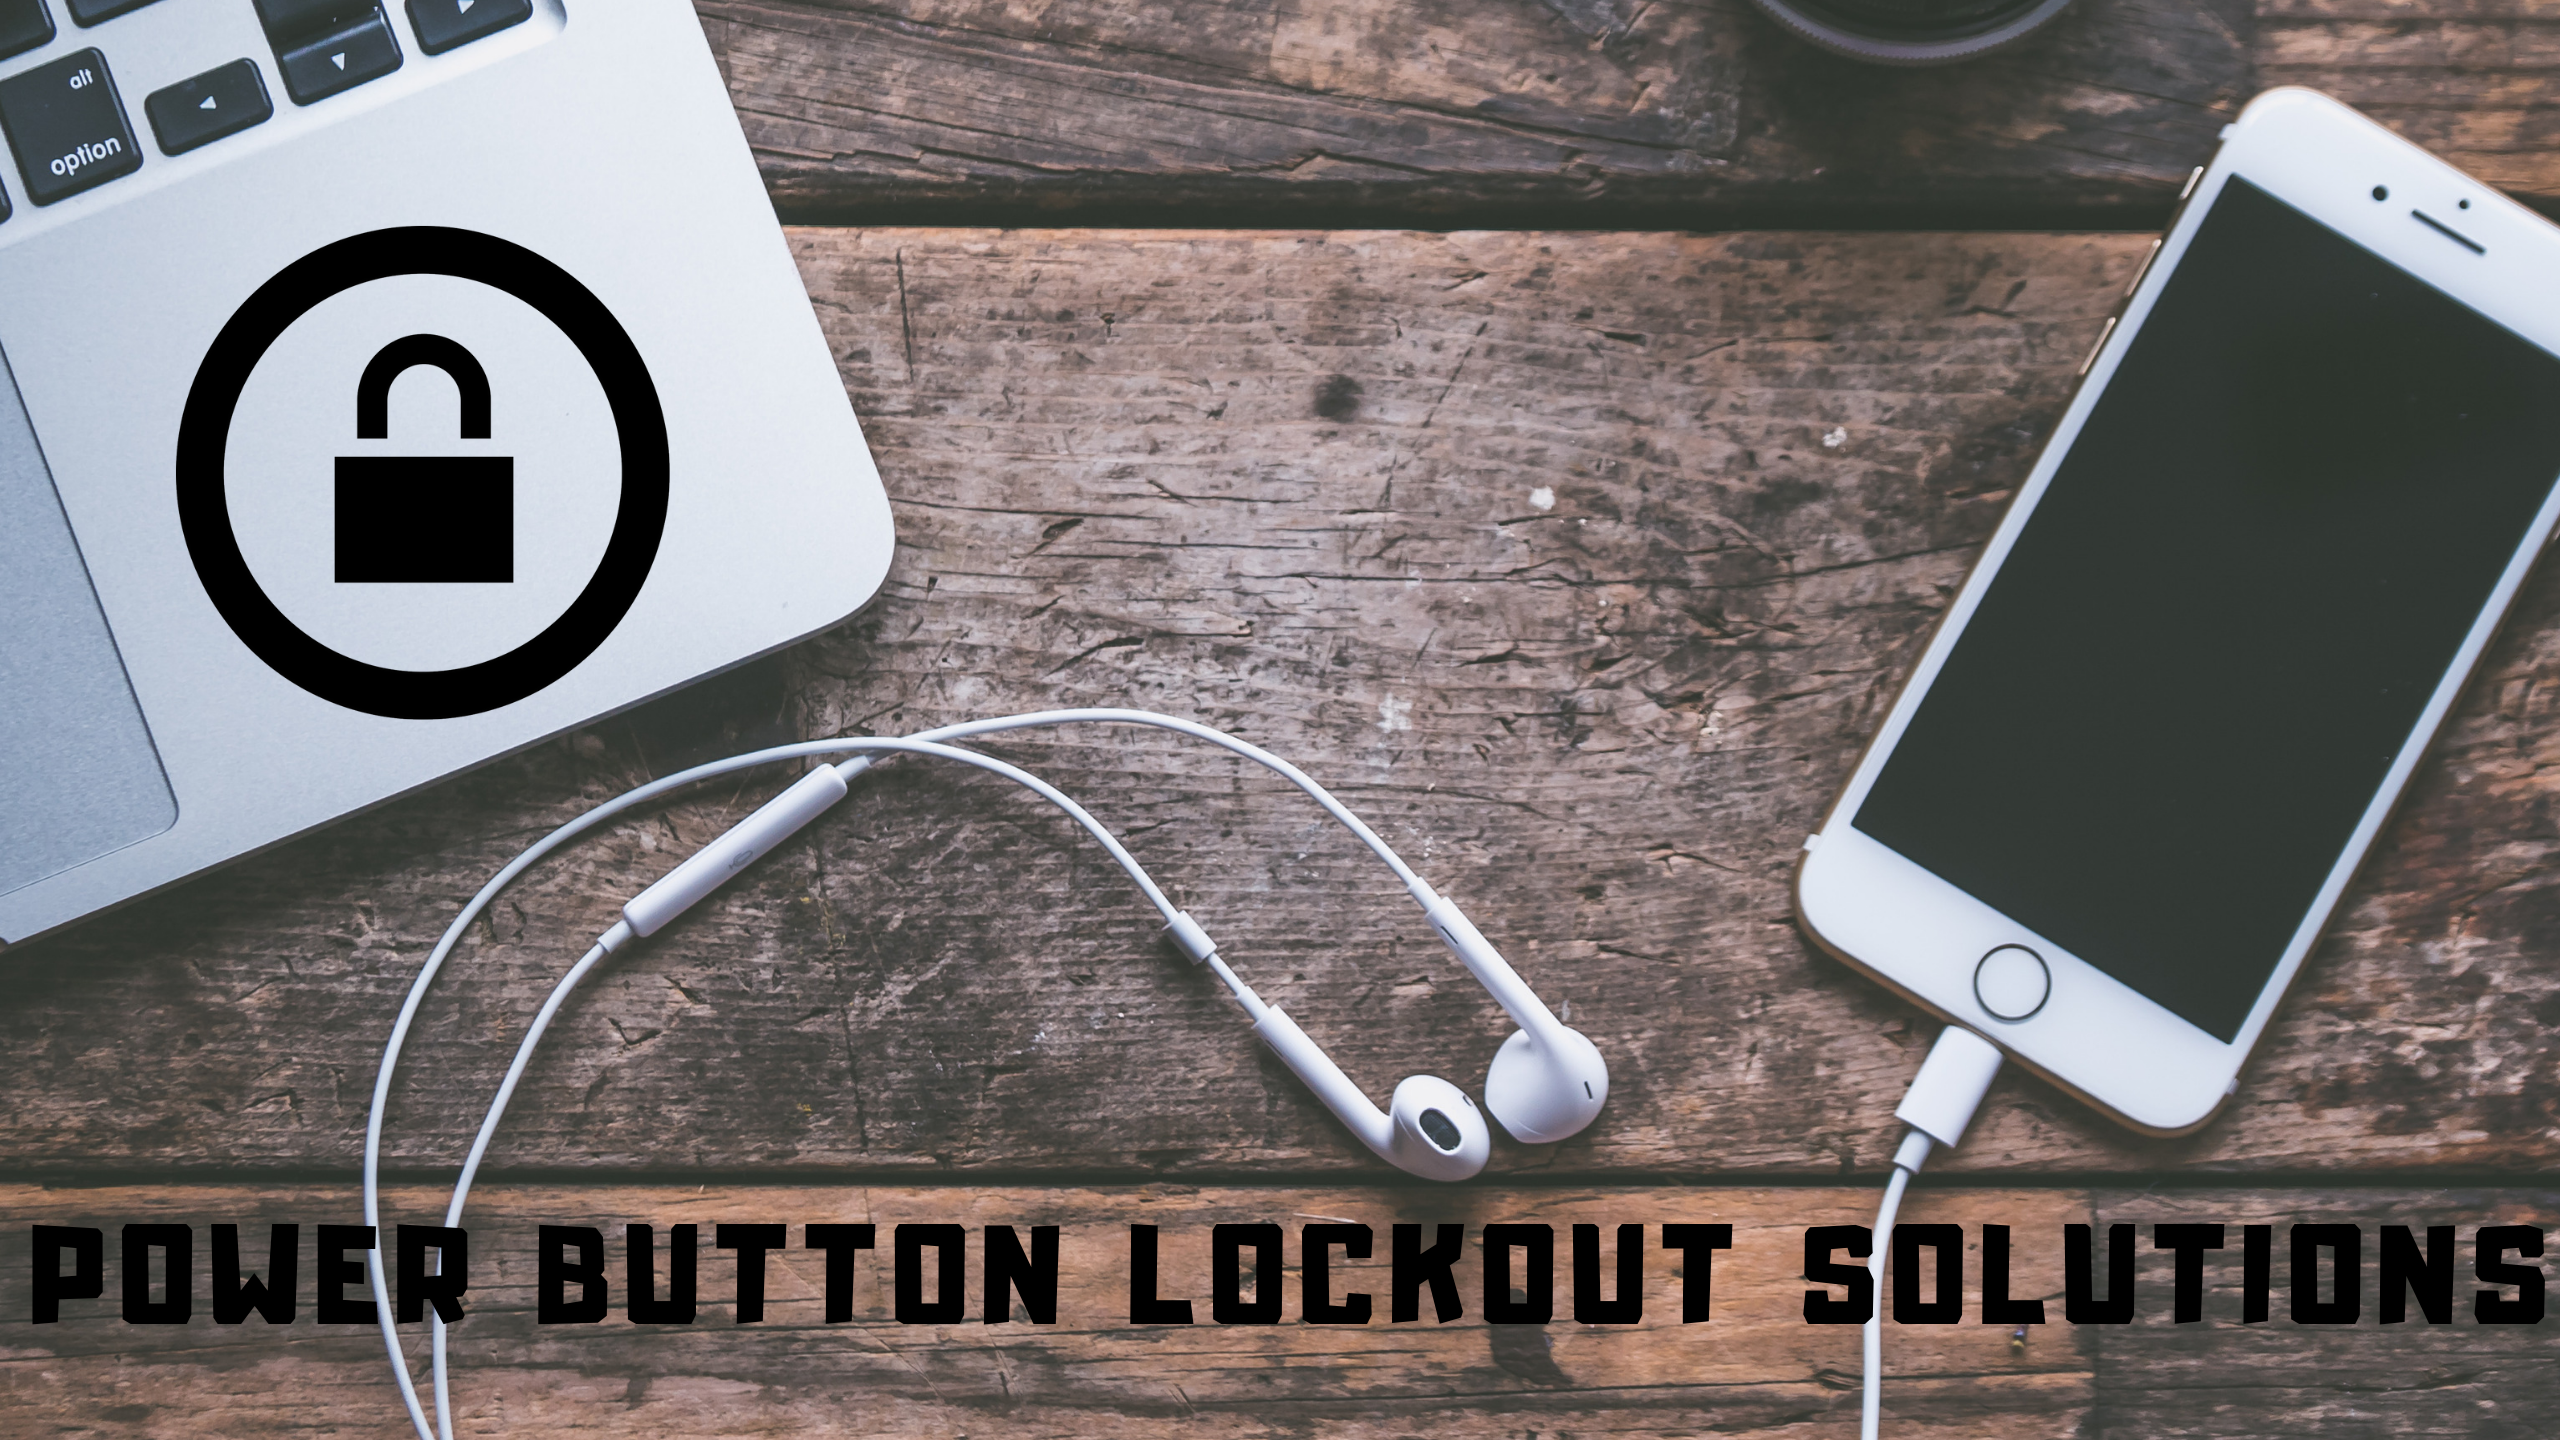 What To Do If The Power Button Lockout Is Not Working? Solutions To Turn The Screen On And Off